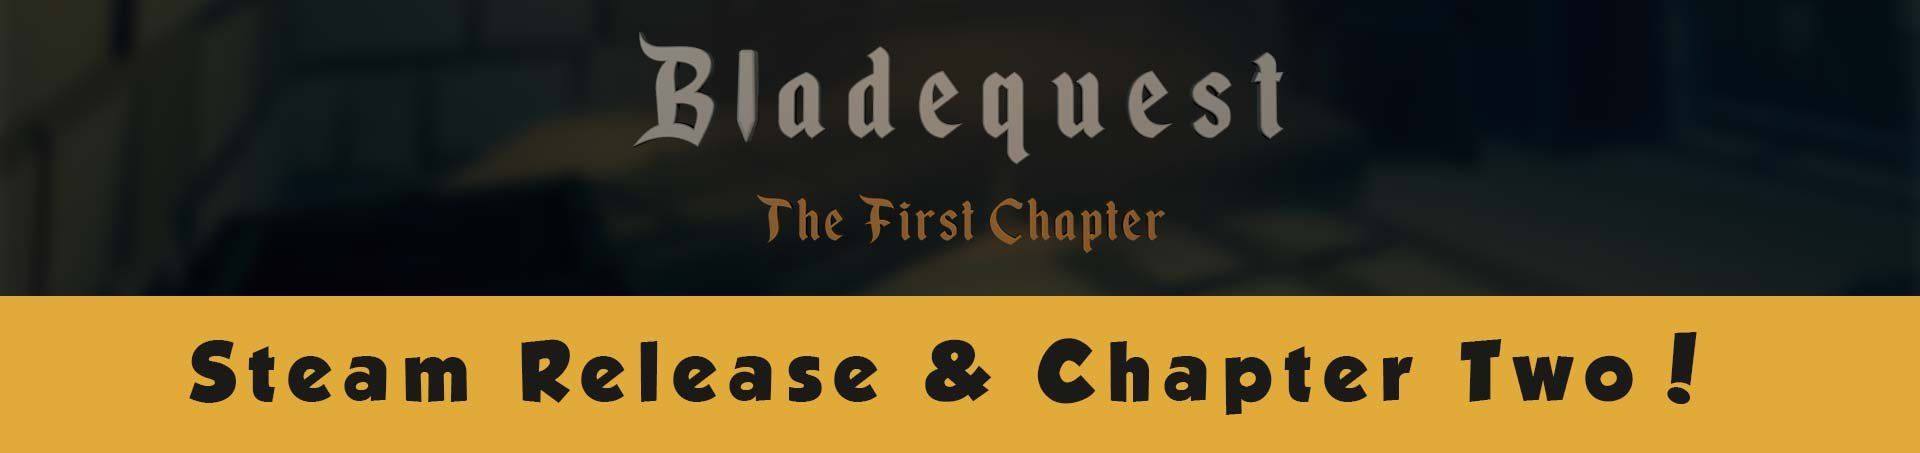 Steam Release & Bladequest: Chapter Two!